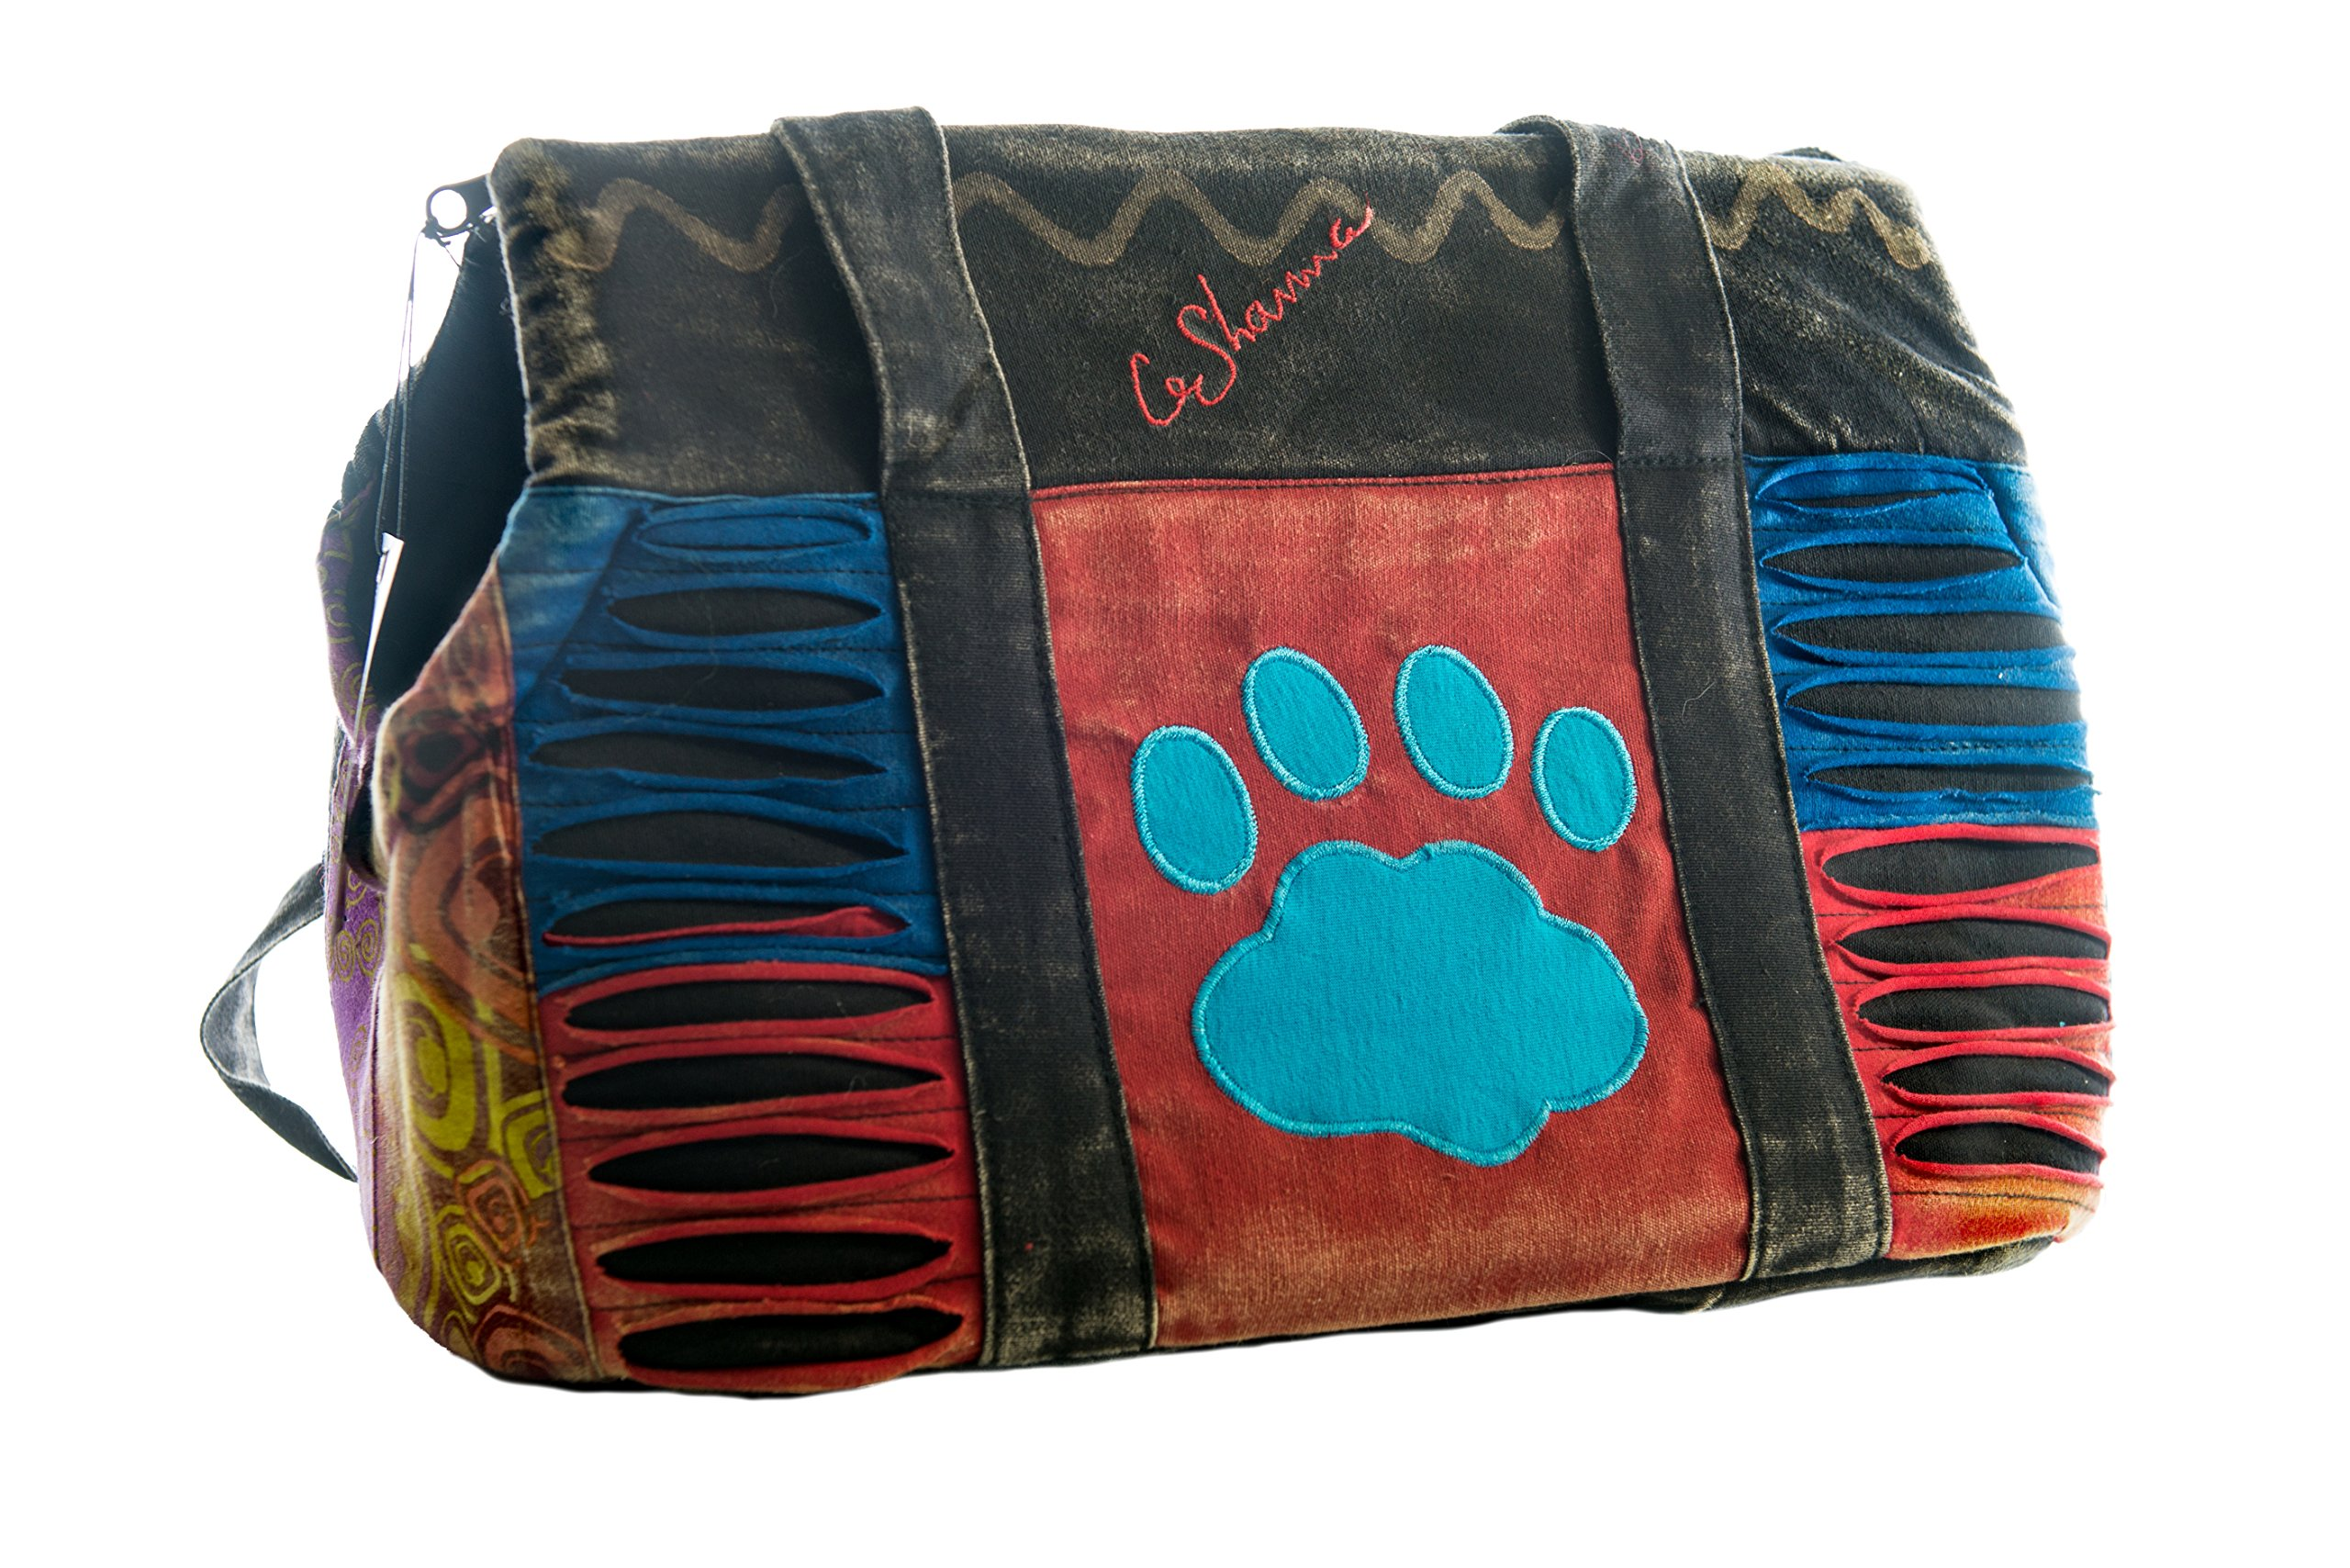 Le Sharma Cotton-Dog Carrier, Handmade with 100% Cotton, Stylish and Practical, Ideal for Small Dogs (LSFCC-03)